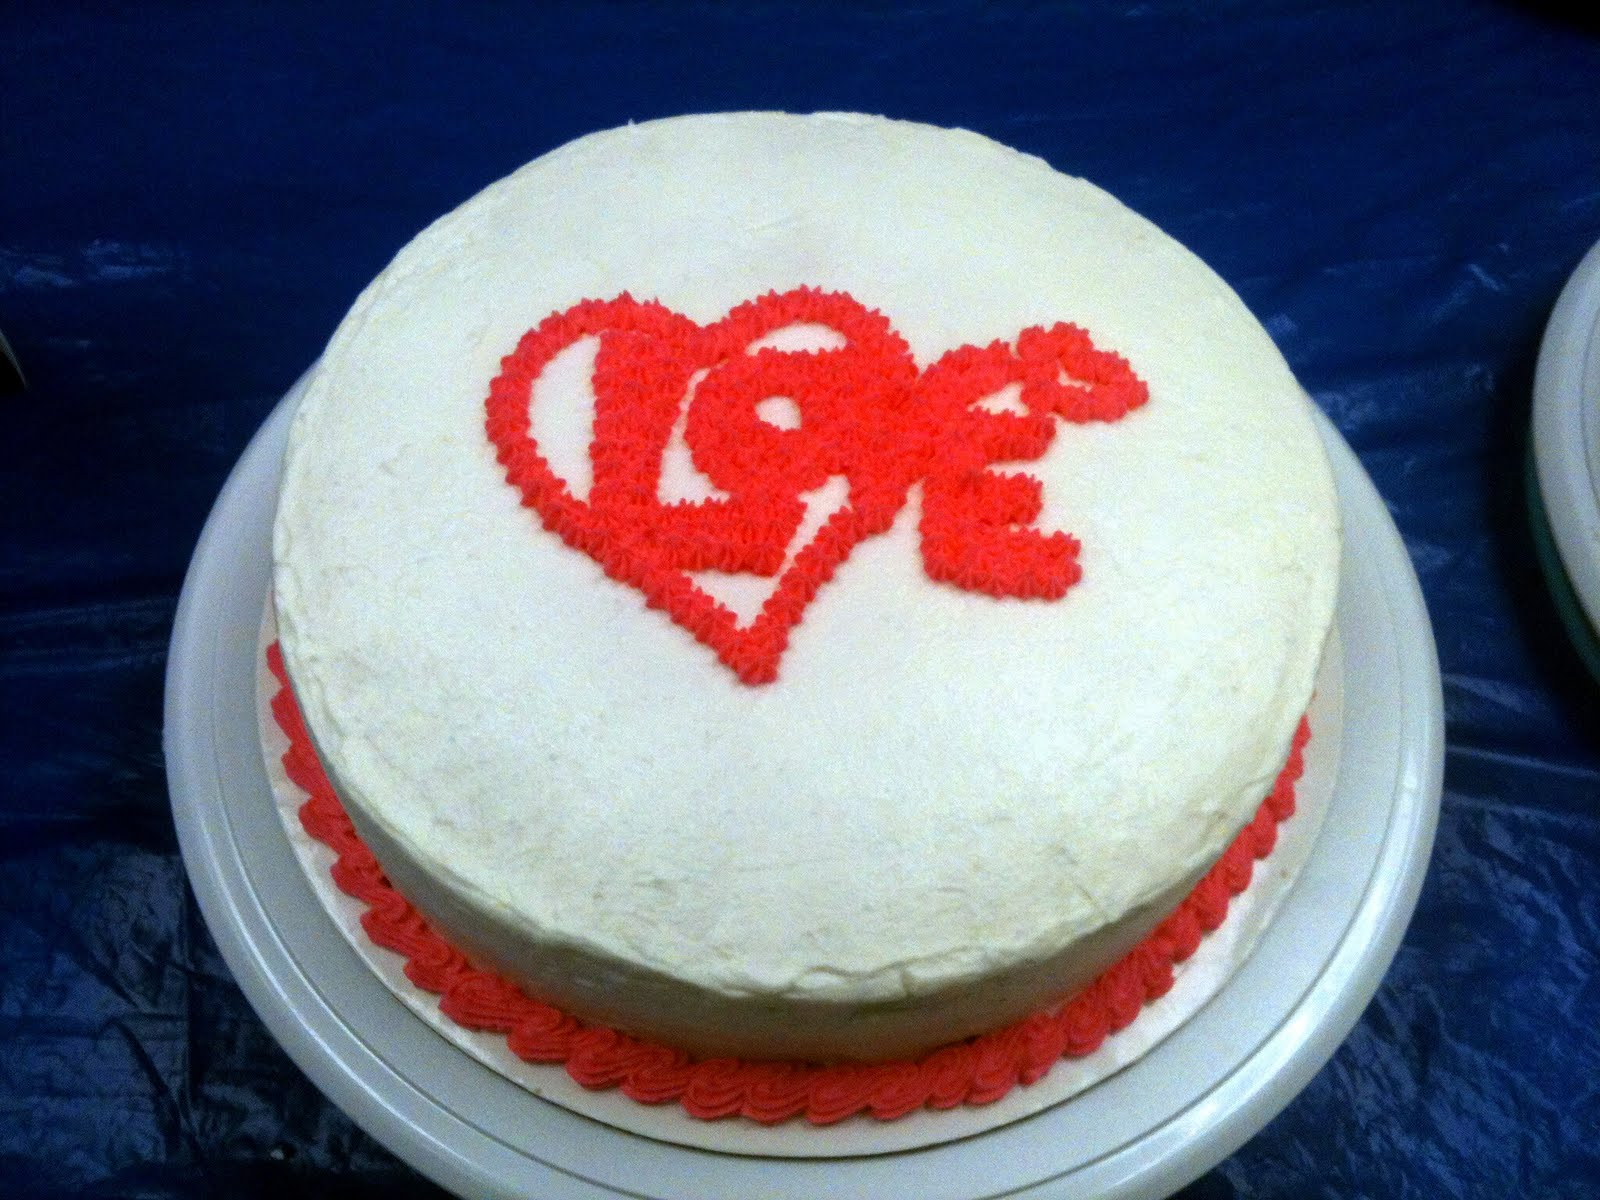 Cake Decorating by Sonia: January 2012